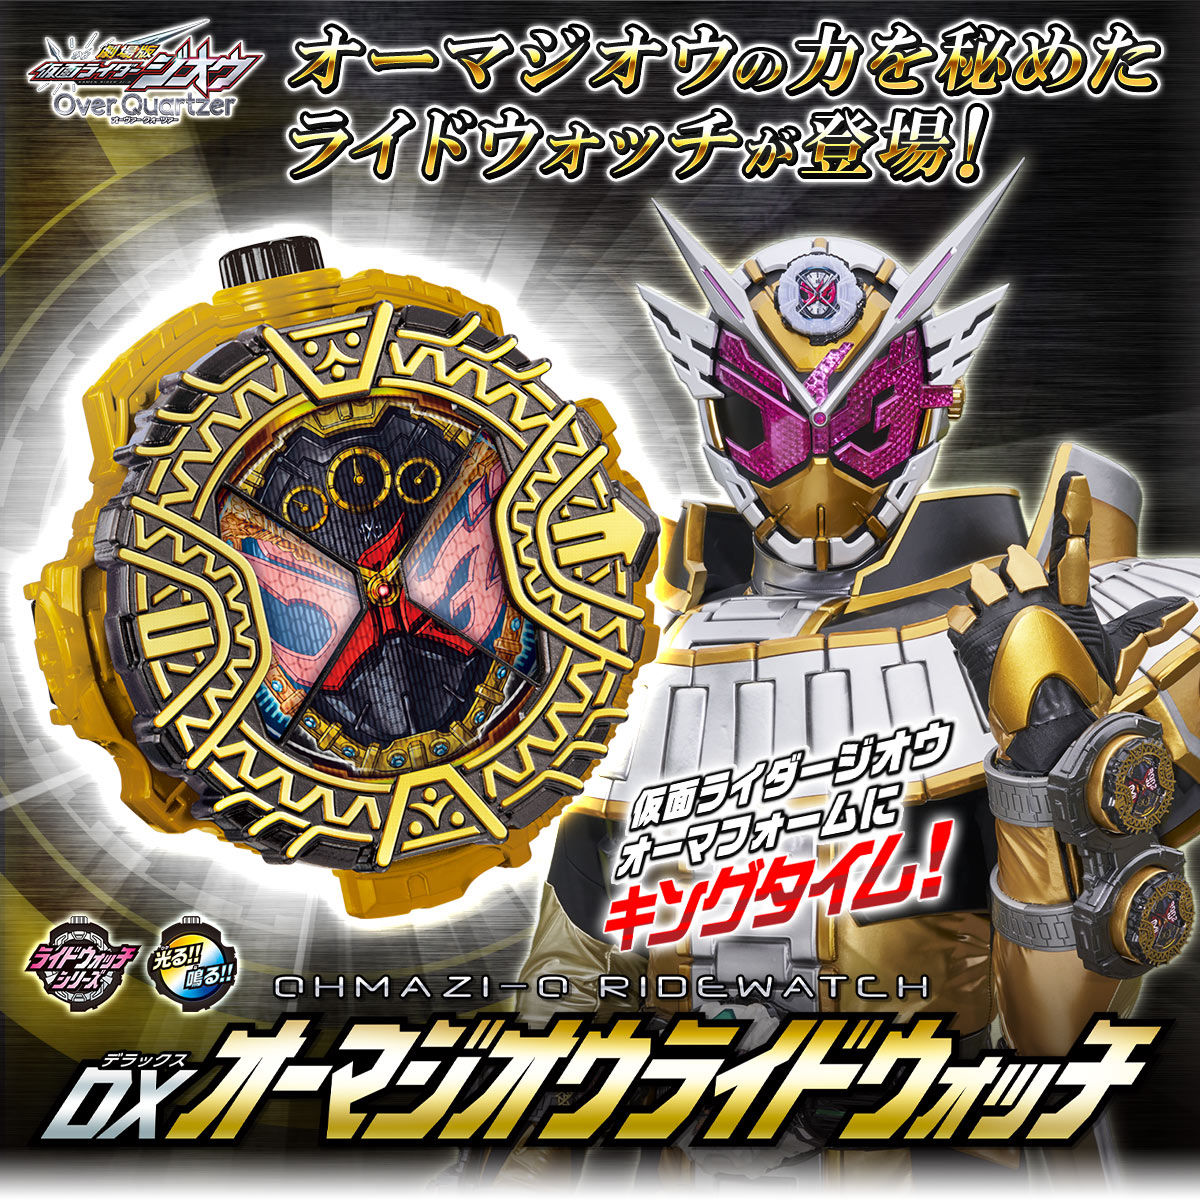 Official Images: Kamen Rider Zi-O DX Ohma Zi-O Ride Watch